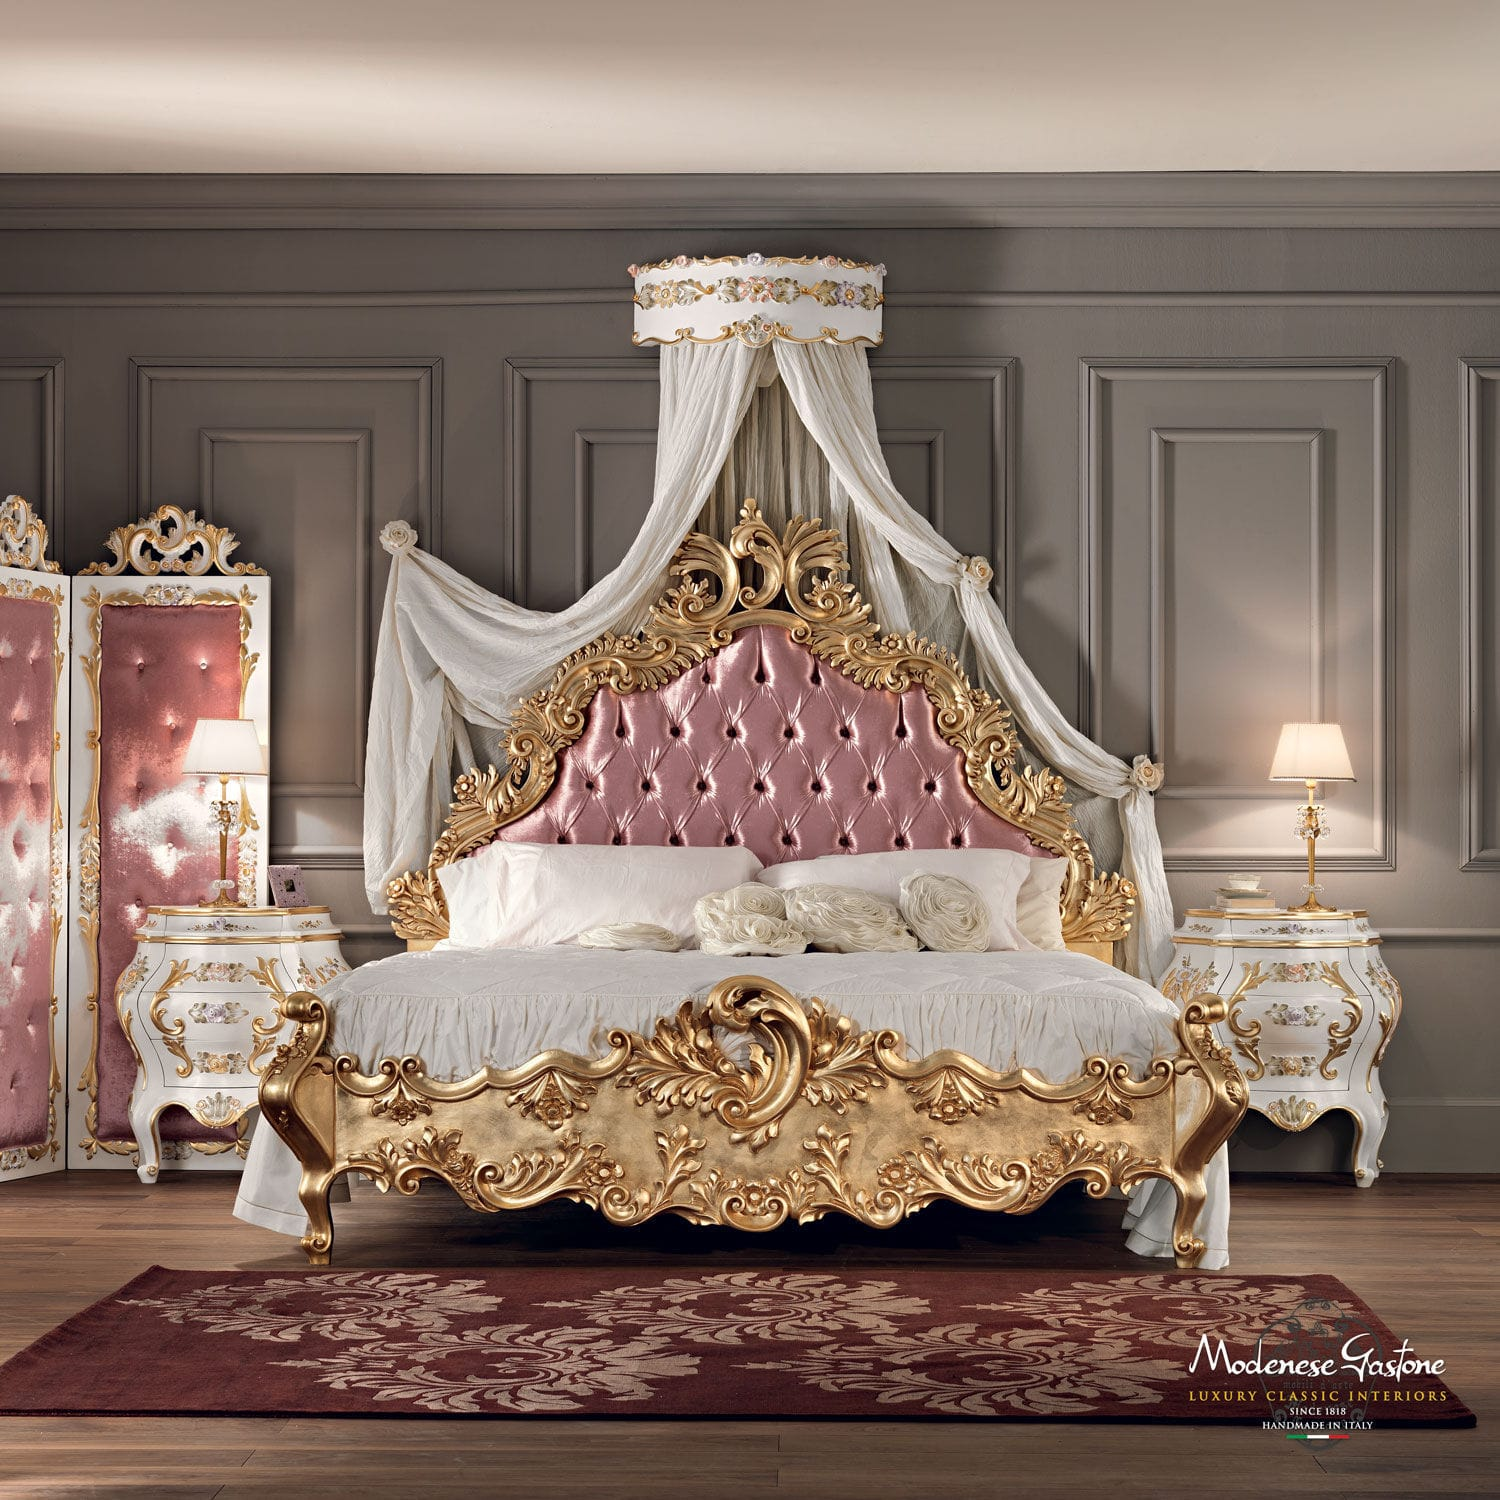 double bed classic solid wood with upholstered headboard